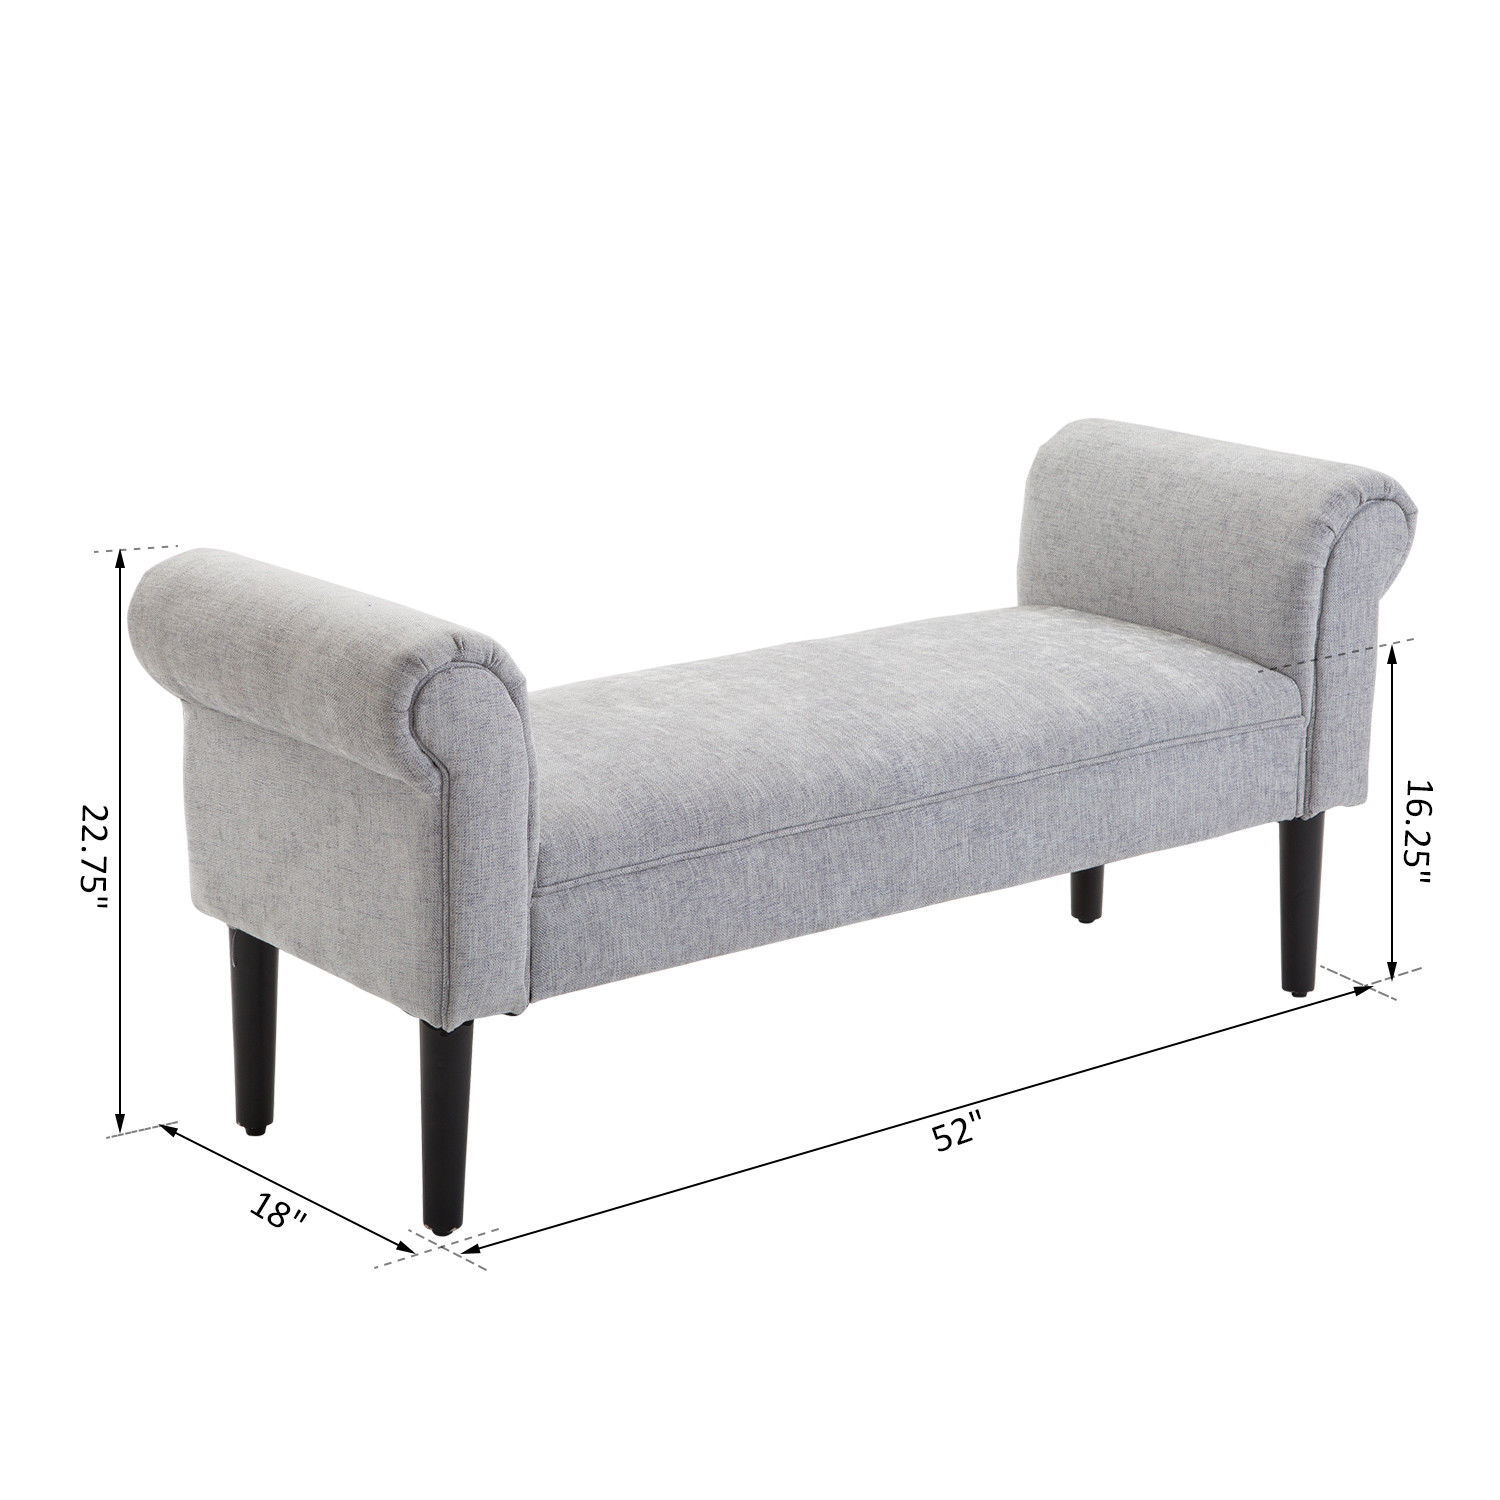 52 modern rolled arm bench bed end ottoman sofa seat footrest bedroom entryway ebay Bed benches